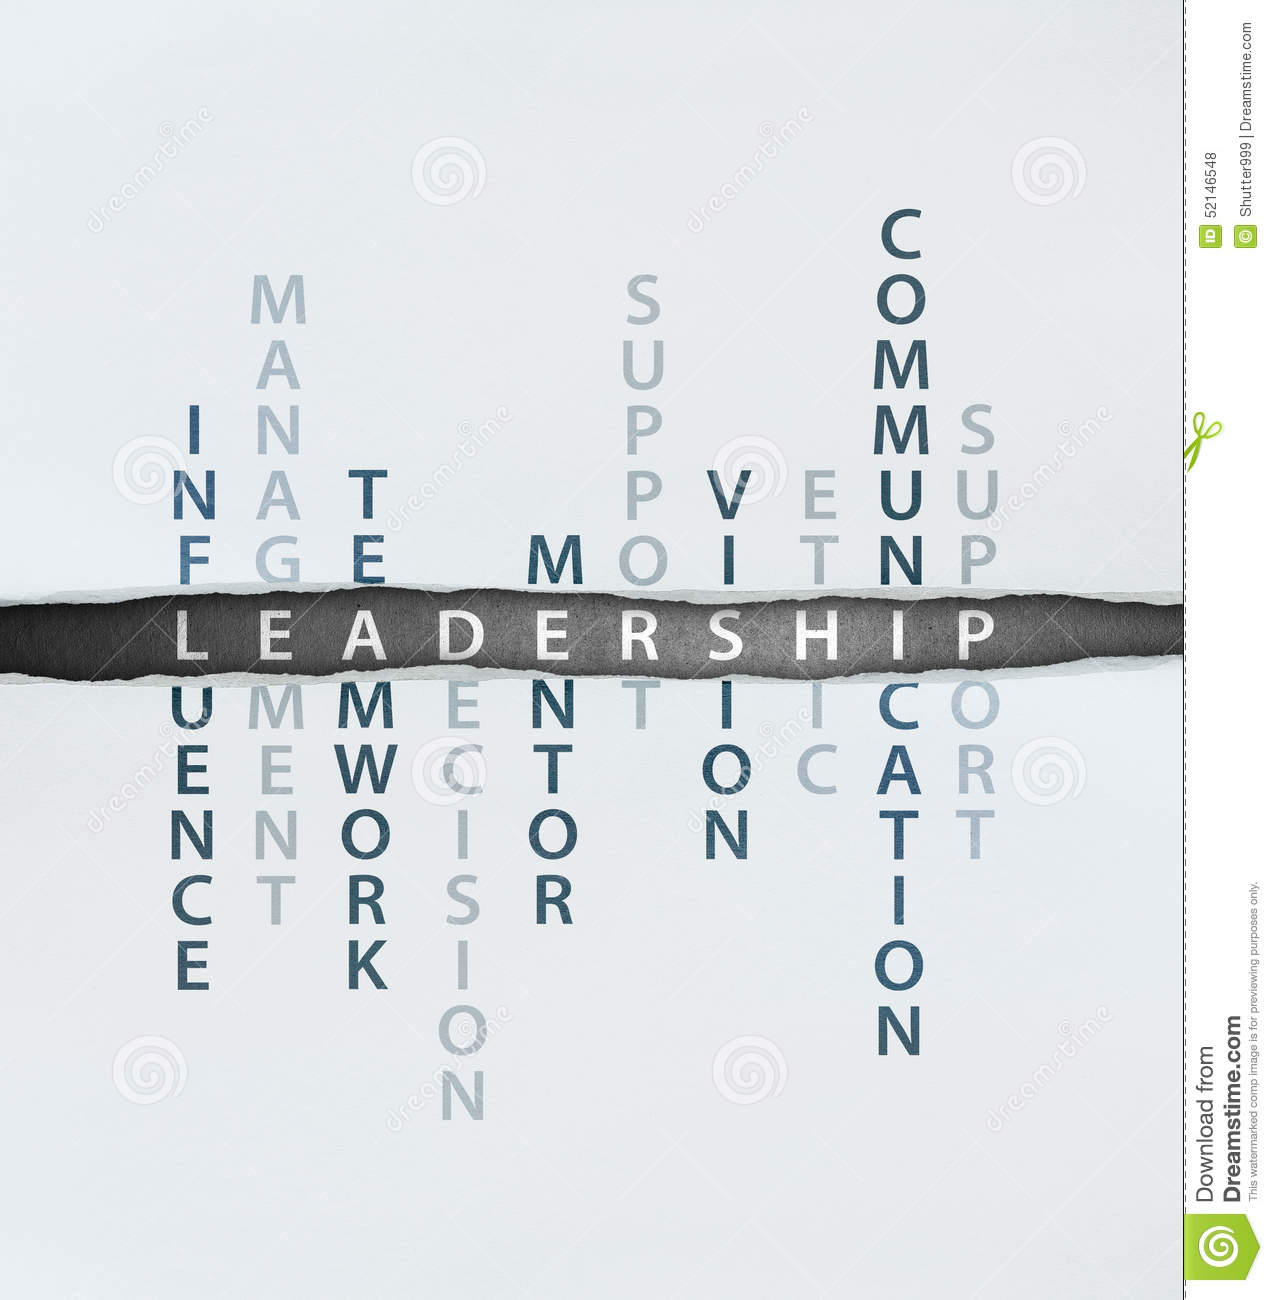 Leadership & Different Types of Influence Processes